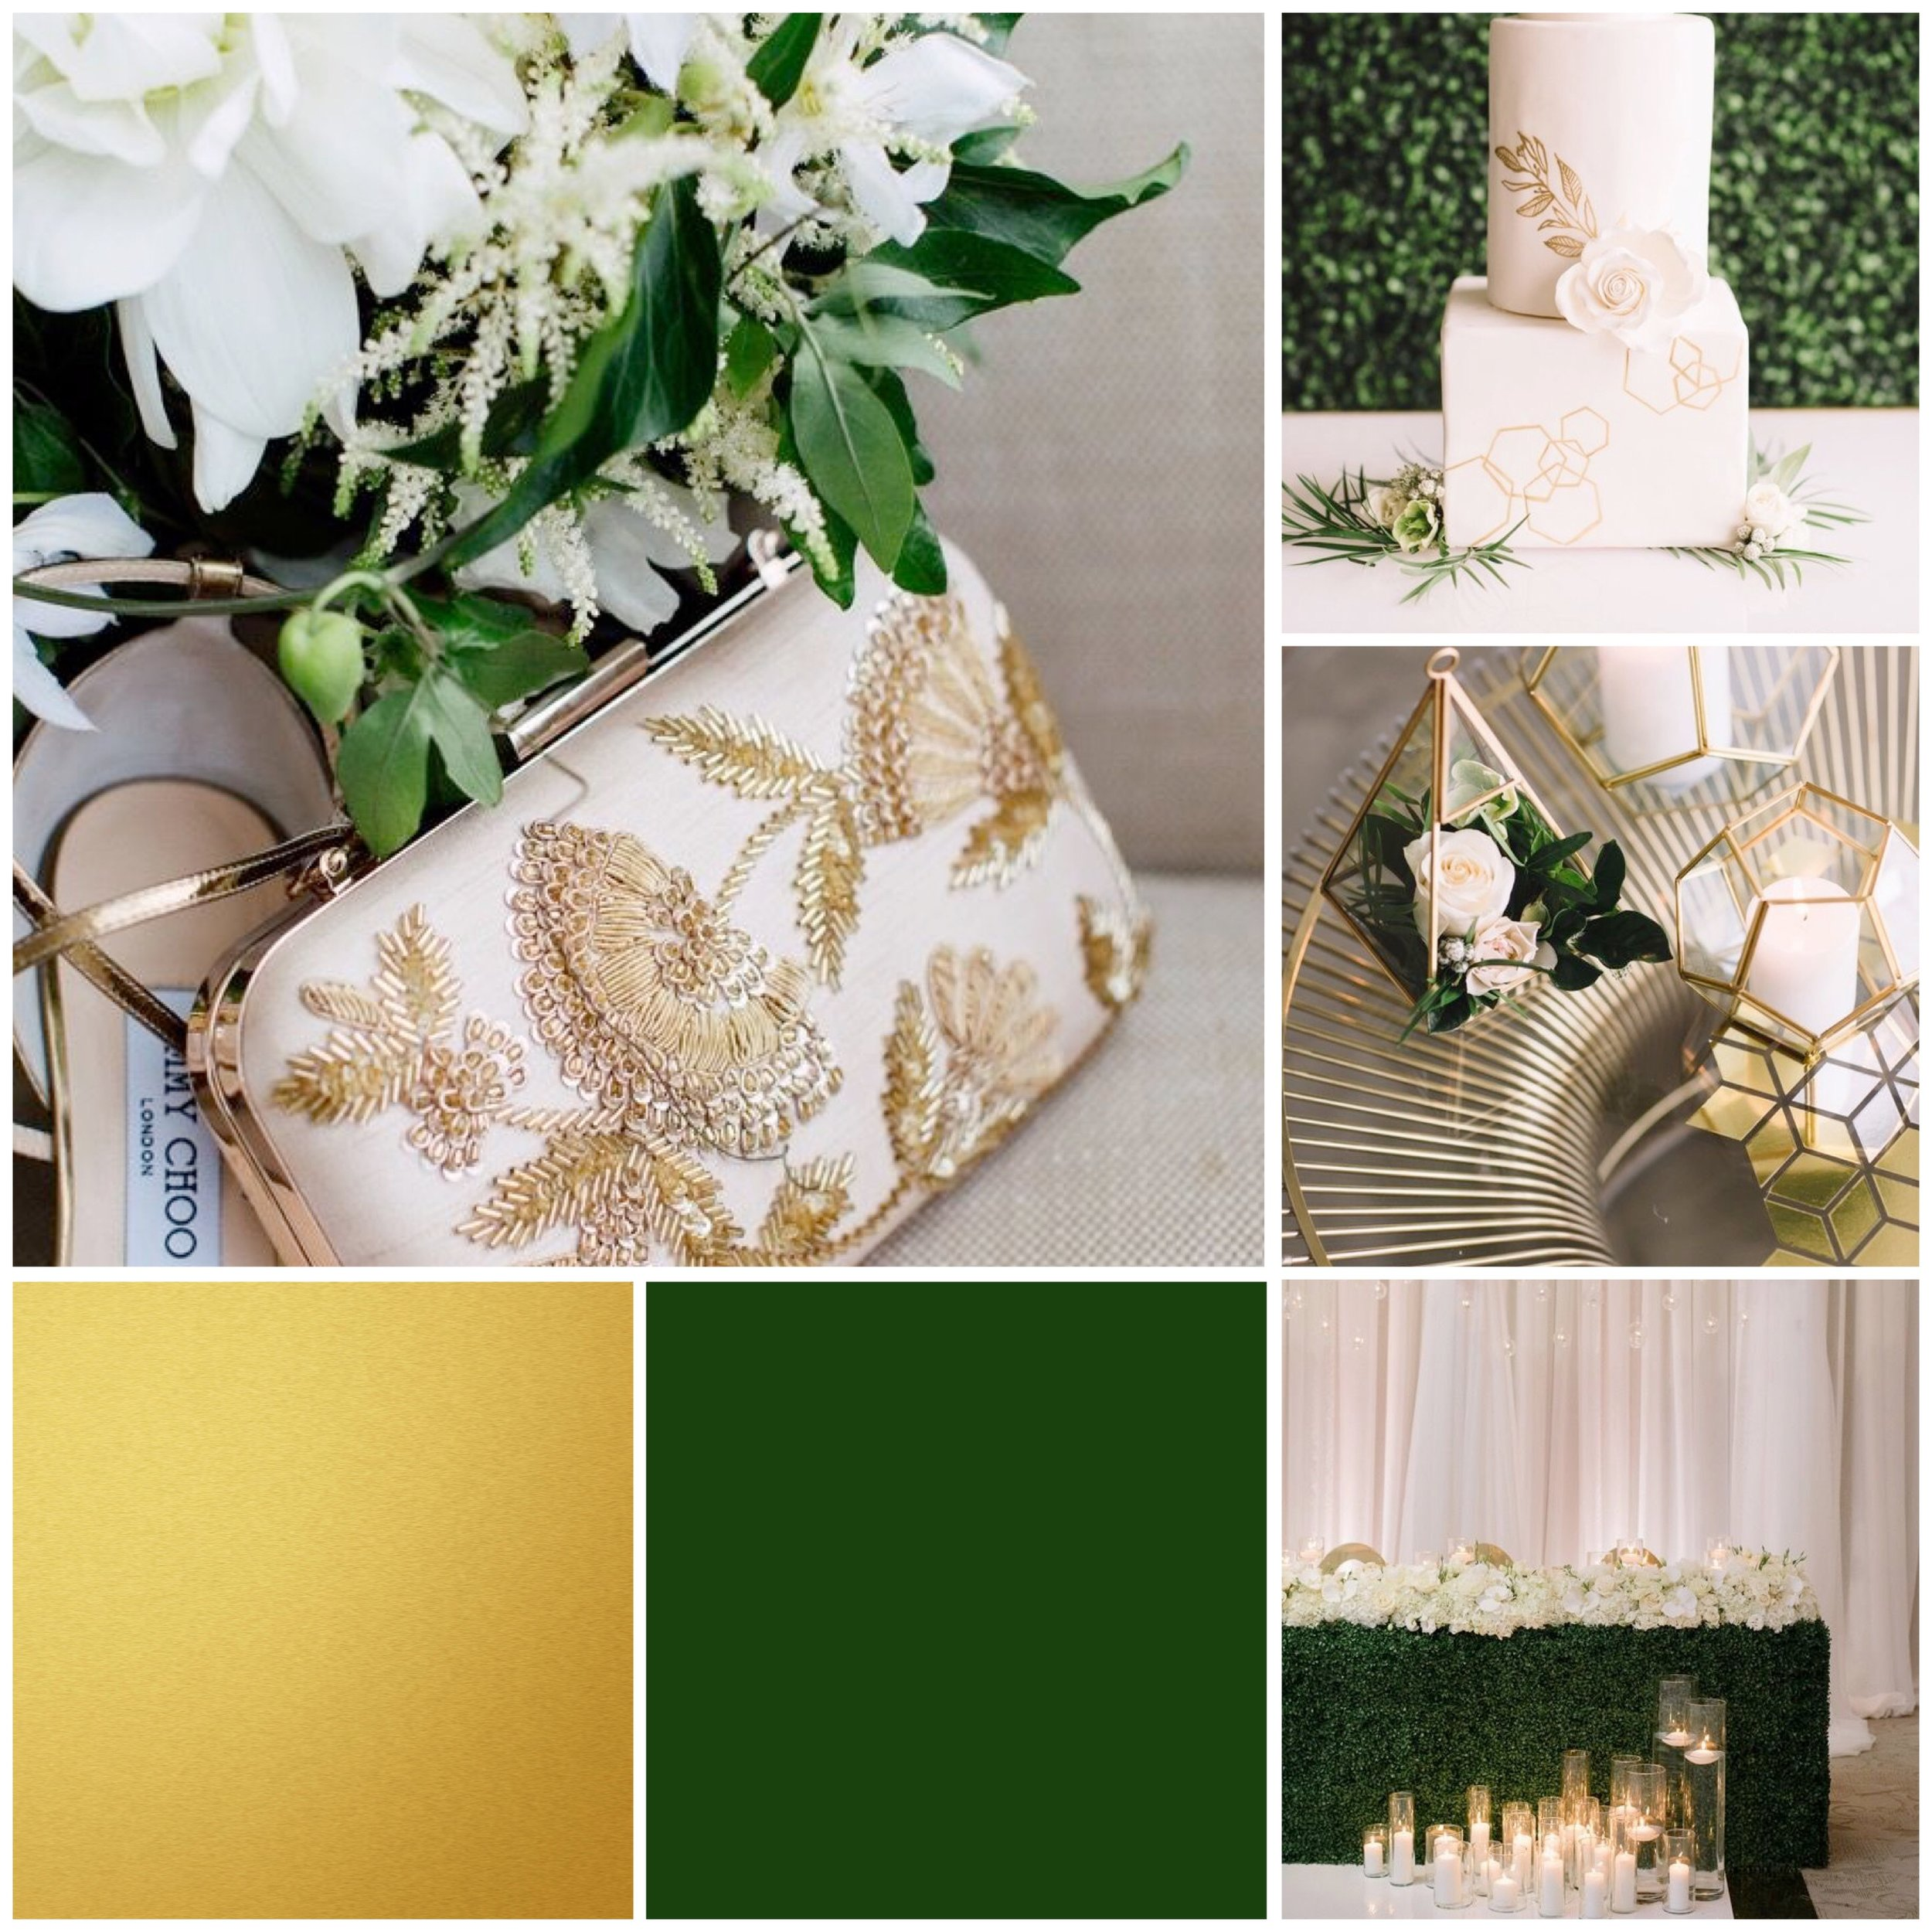 Green & Gold mood board designed by Luxe by Minihaha & co.